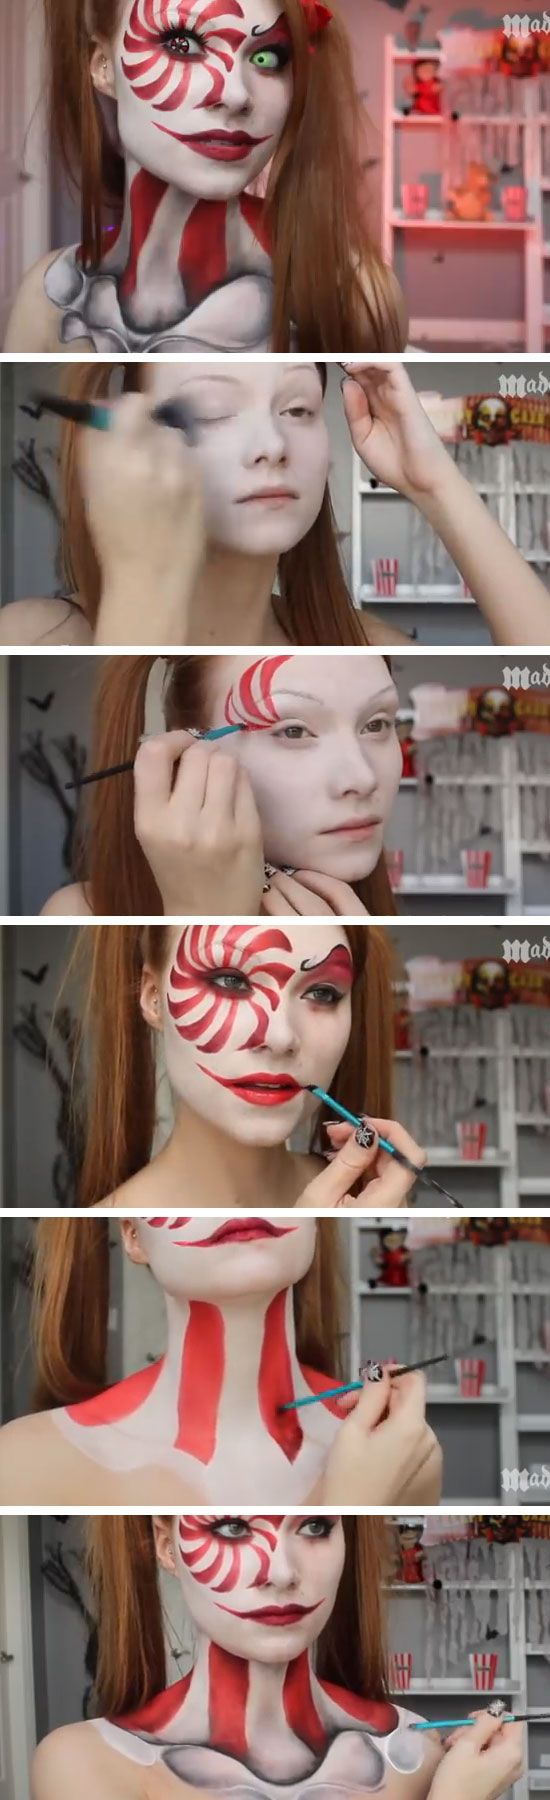 Clown Makeup Tutorial  sc 1 st  Hative & 25+ Super Cool Step by Step Makeup Tutorials for Halloween - Hative